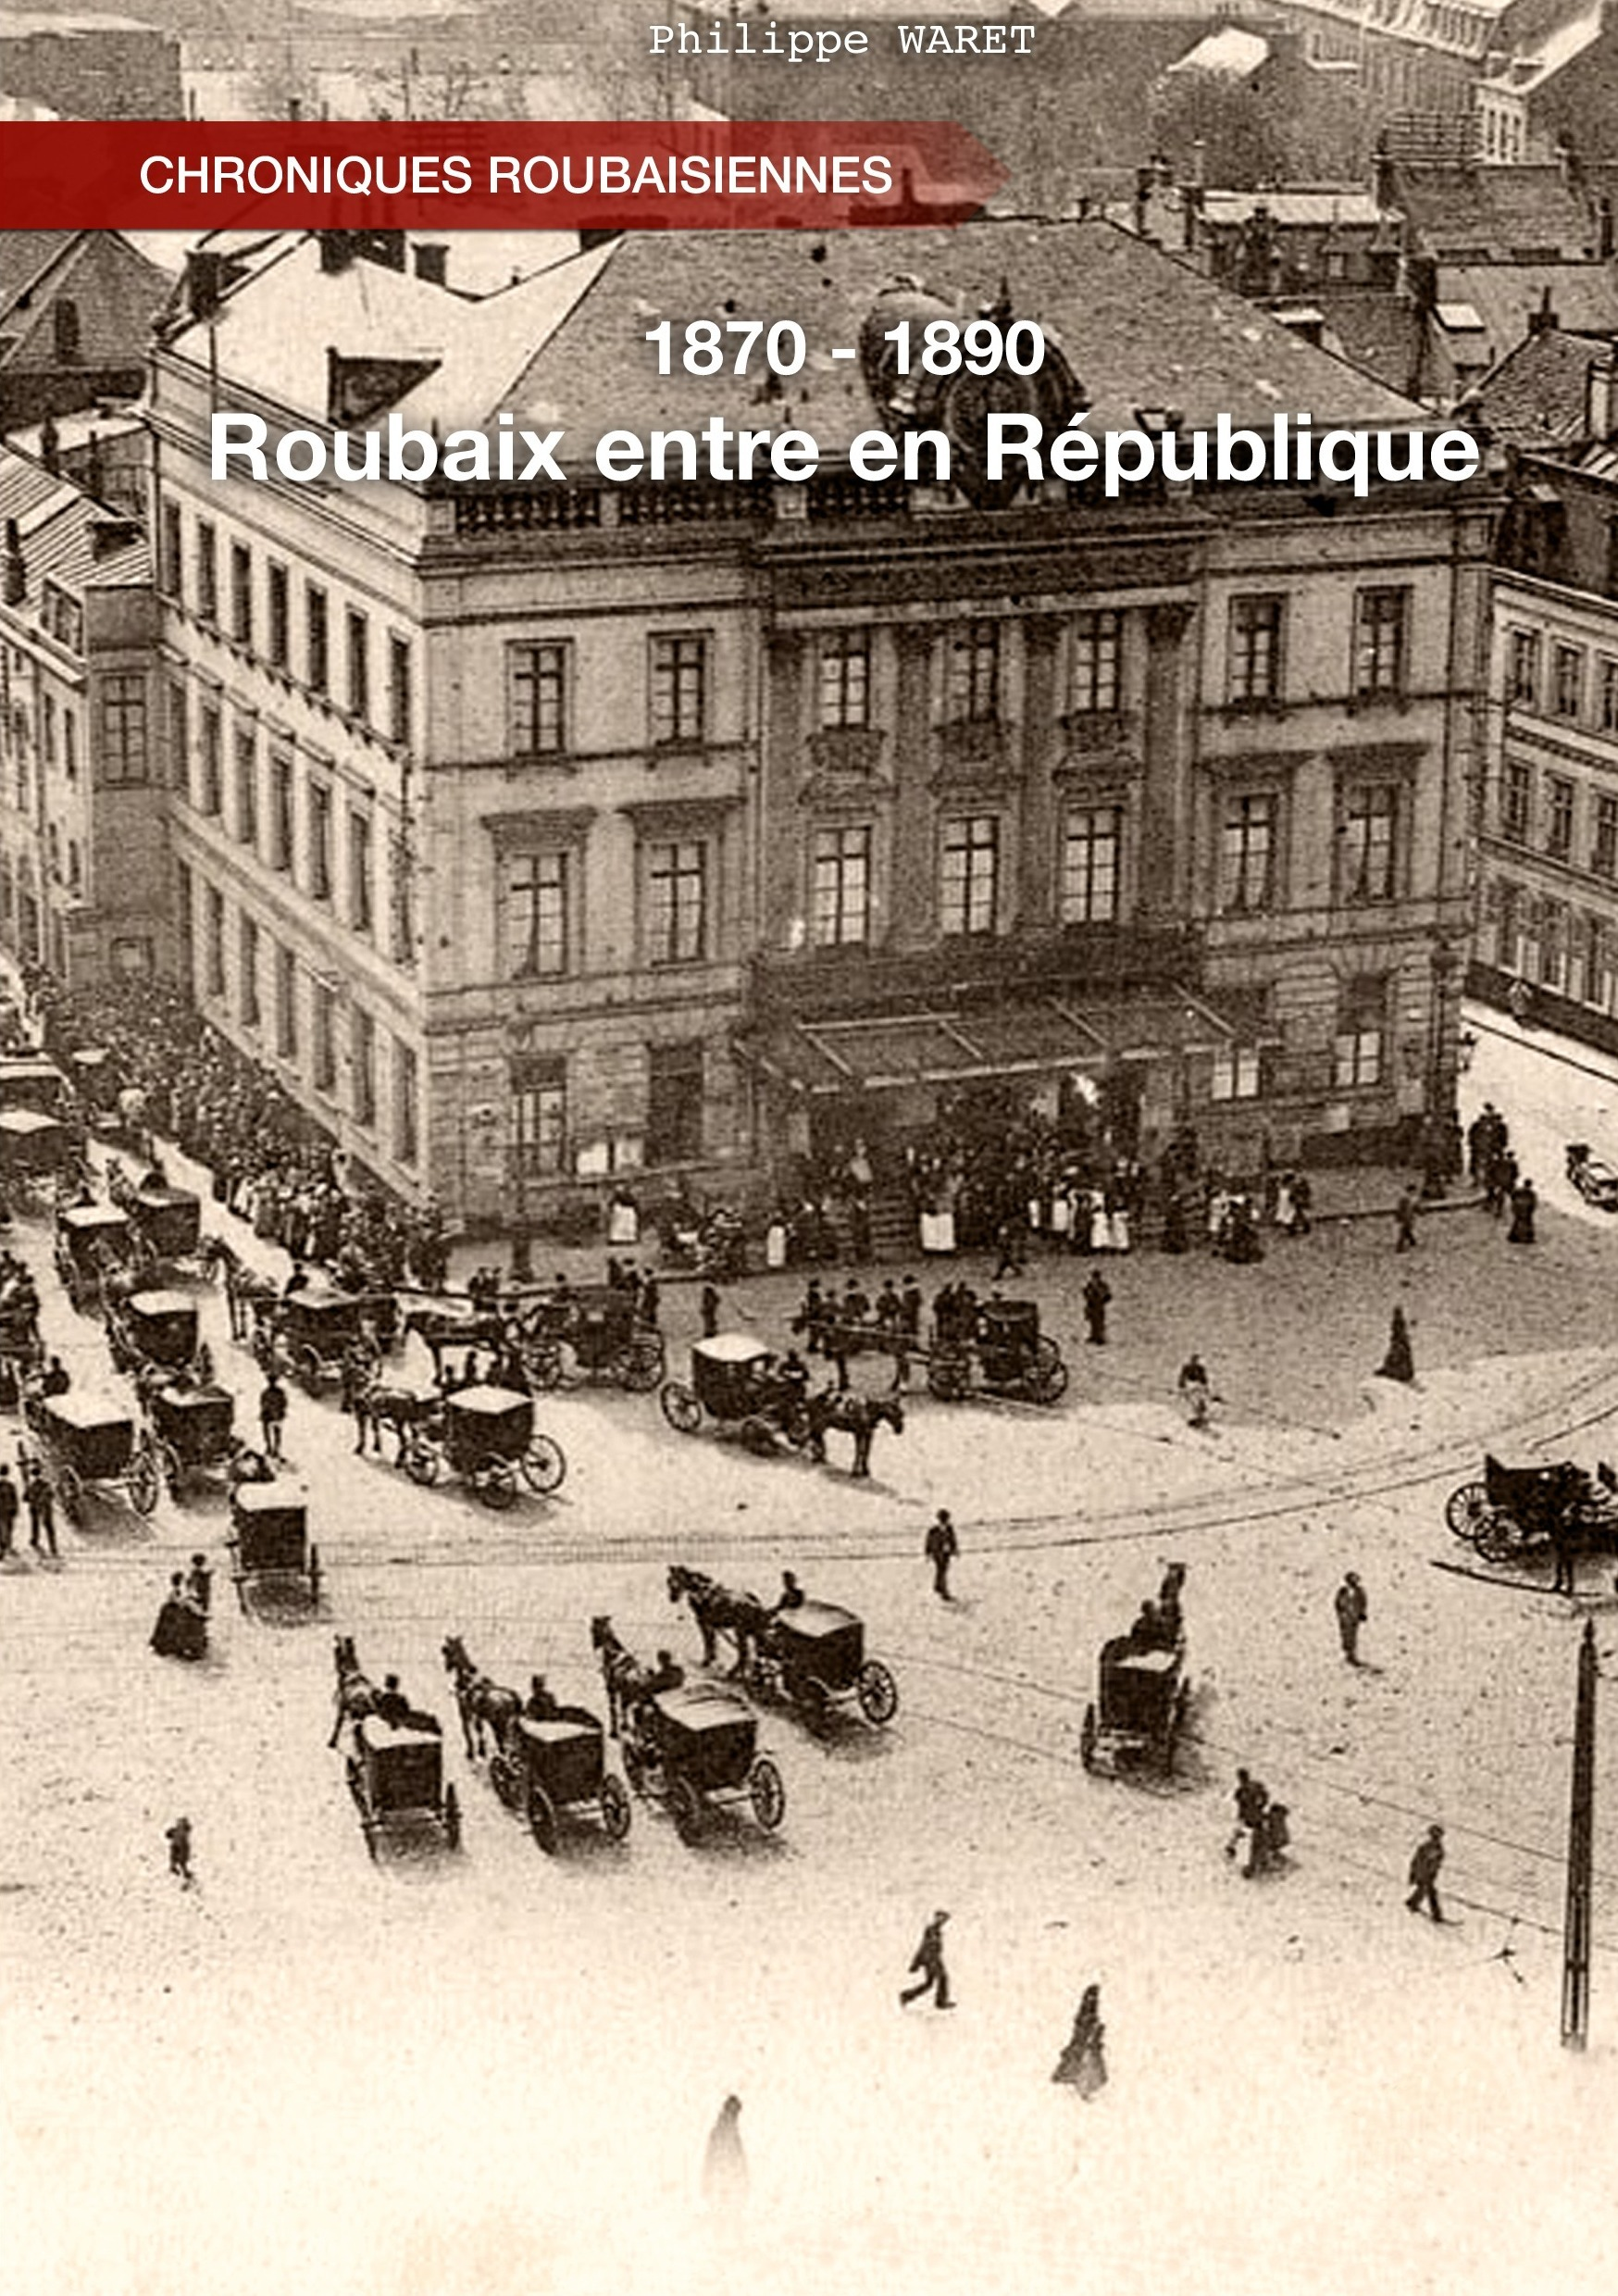 ROUBAIX ENTRE EN REPUBLIQUE